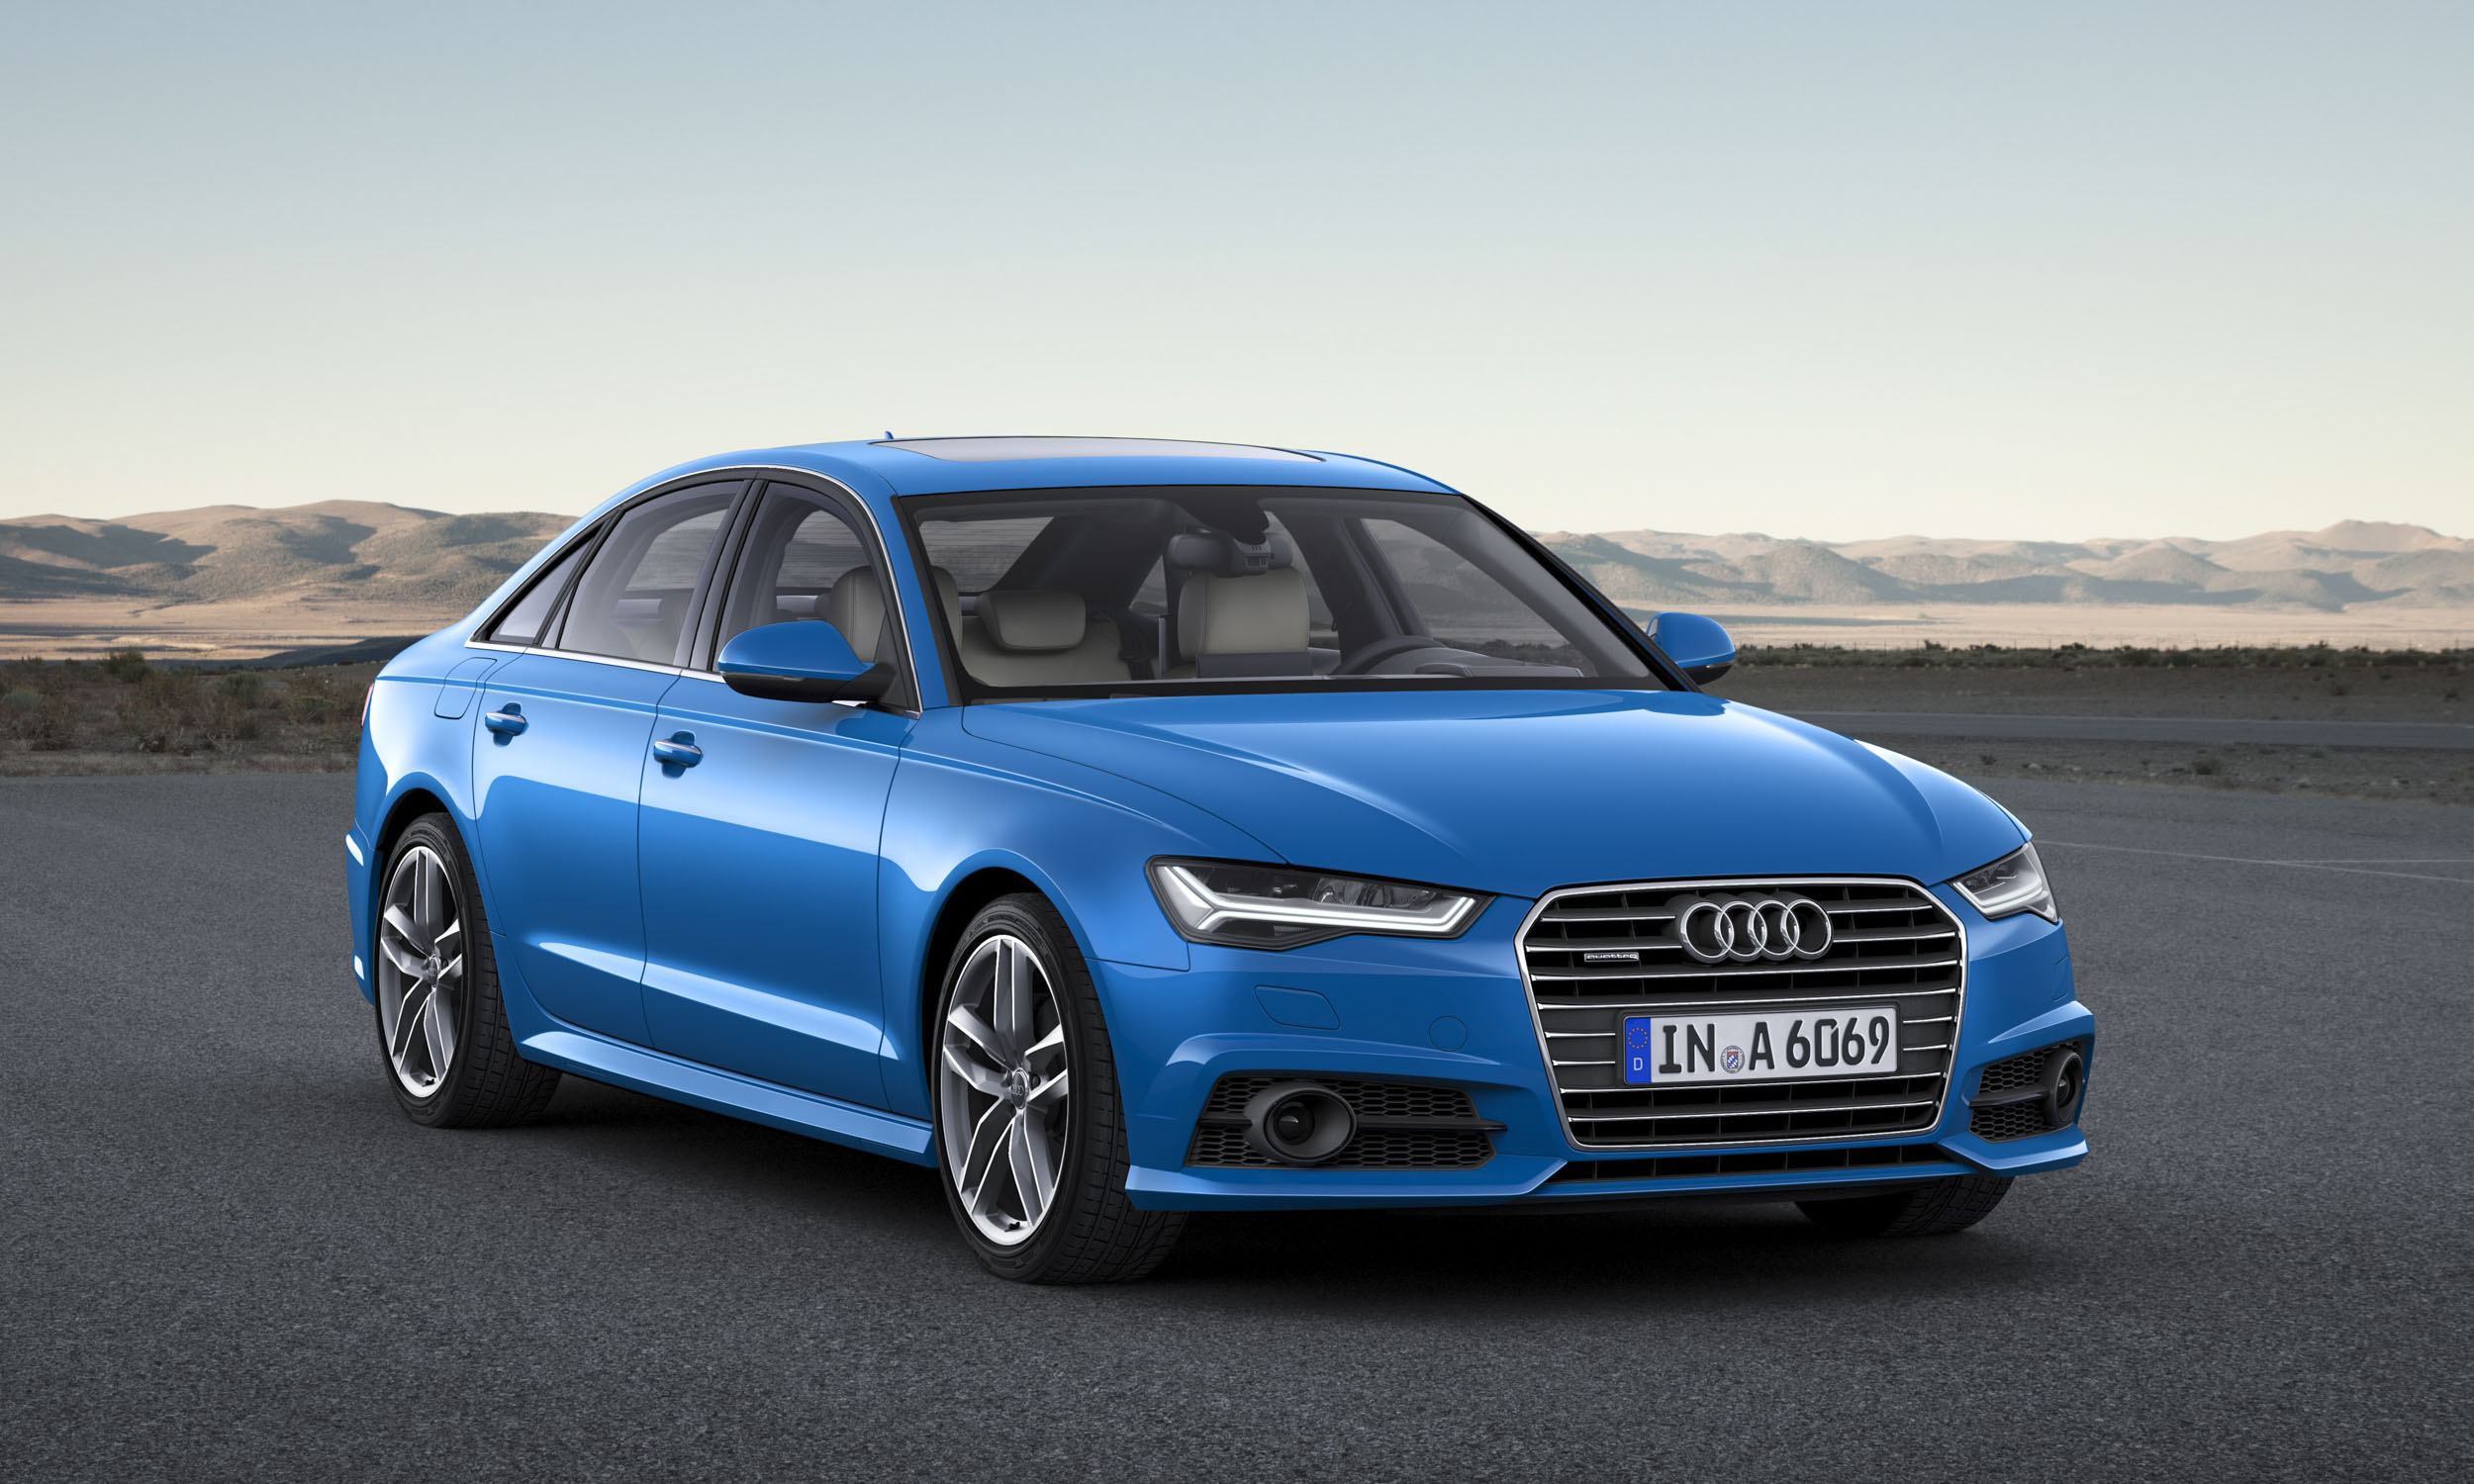 Audi Has Done An Amazing Job With Vehicle Design In The Past Few Years,  Making The A6 One Of The Most Attractive Luxury Sedans On The ...